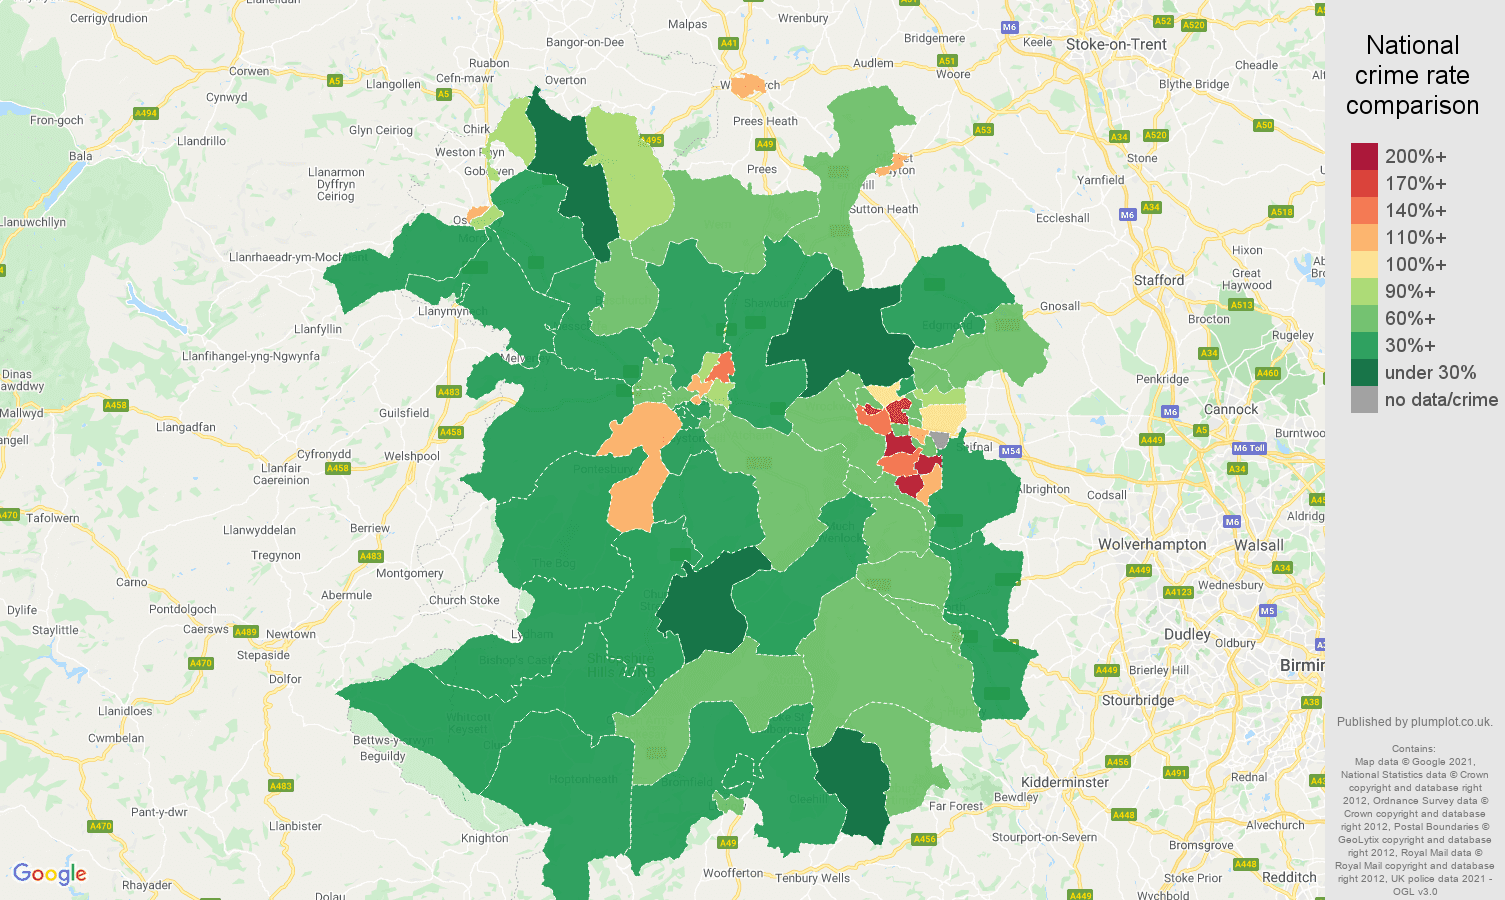 Shropshire violent crime rate comparison map